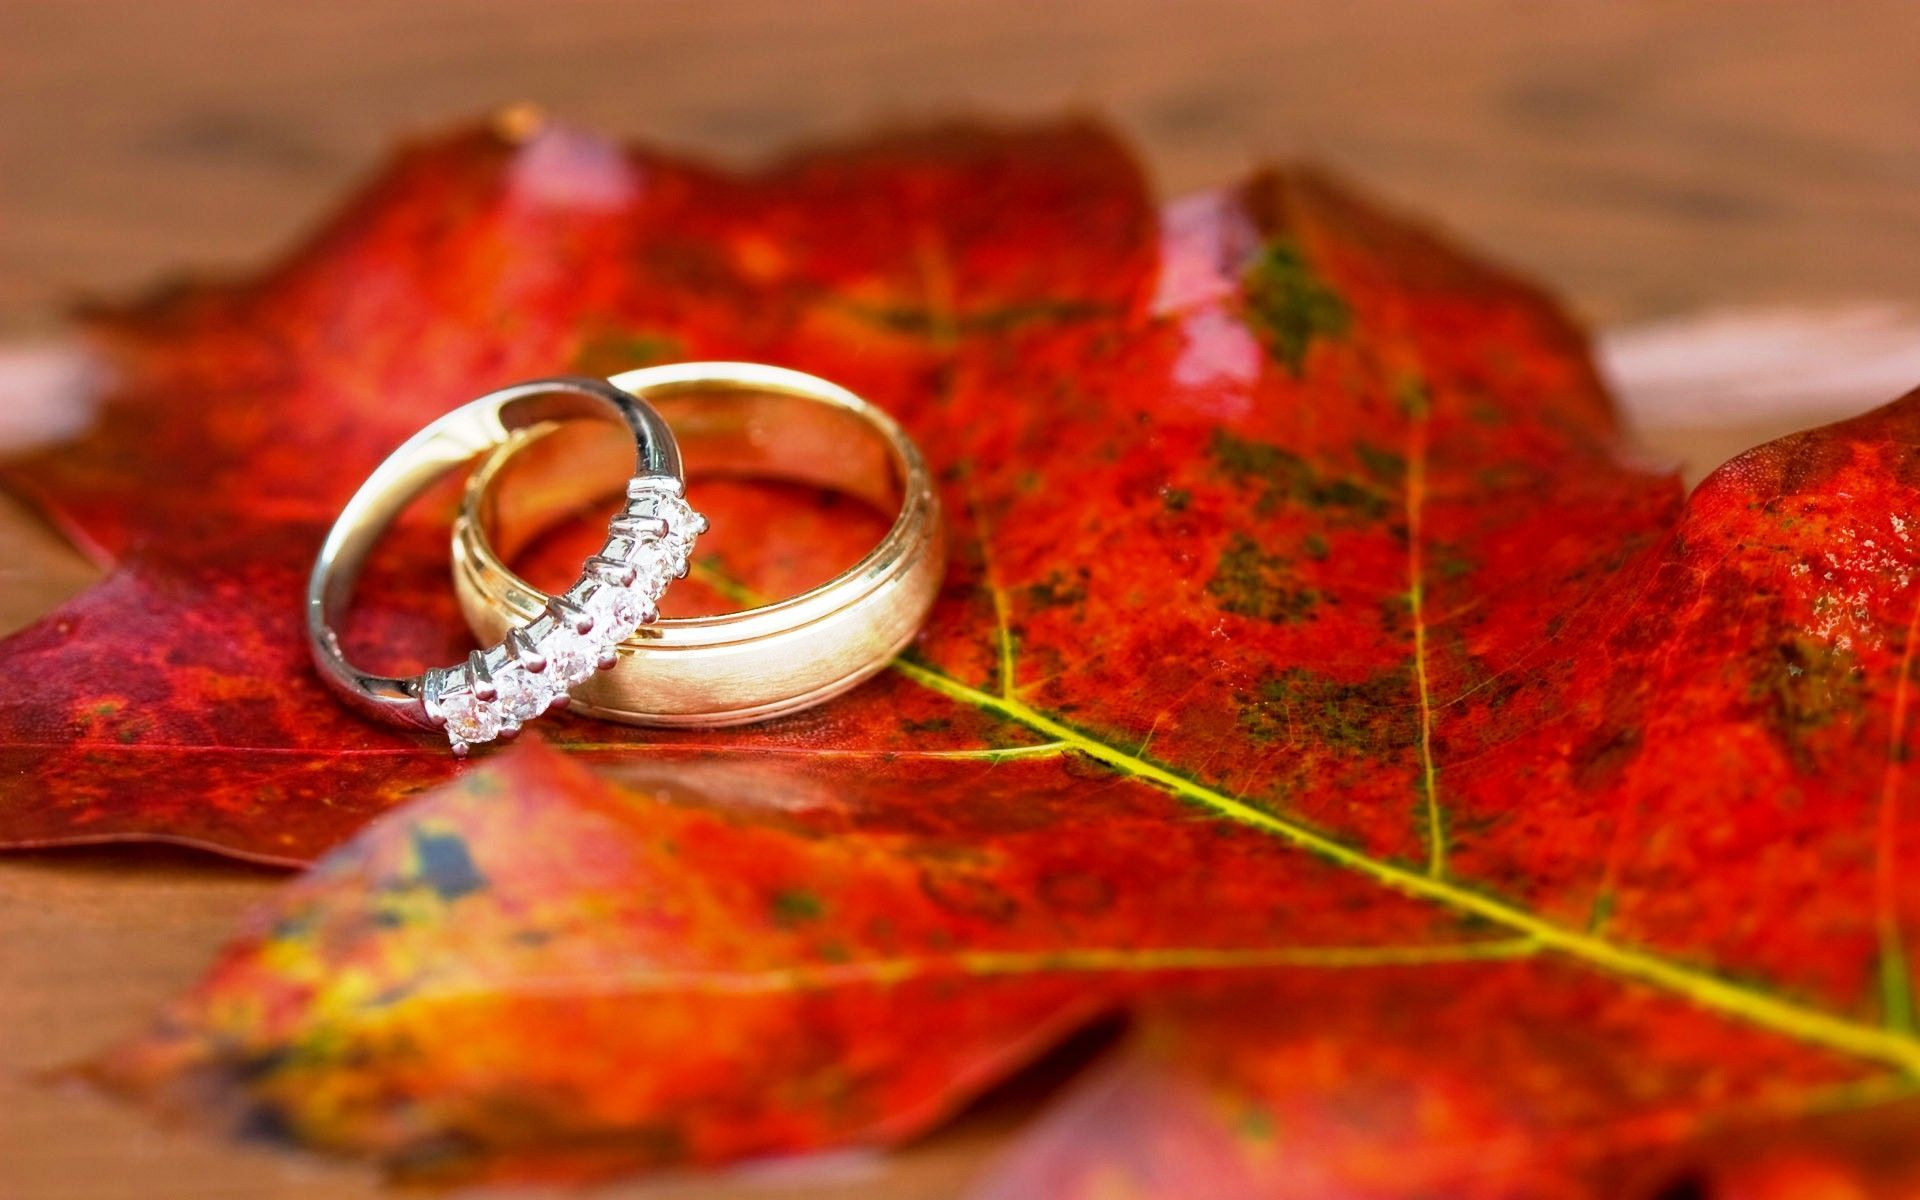 Wedding Rings Wallpapers Top Free Wedding Rings Backgrounds Wallpaperaccess